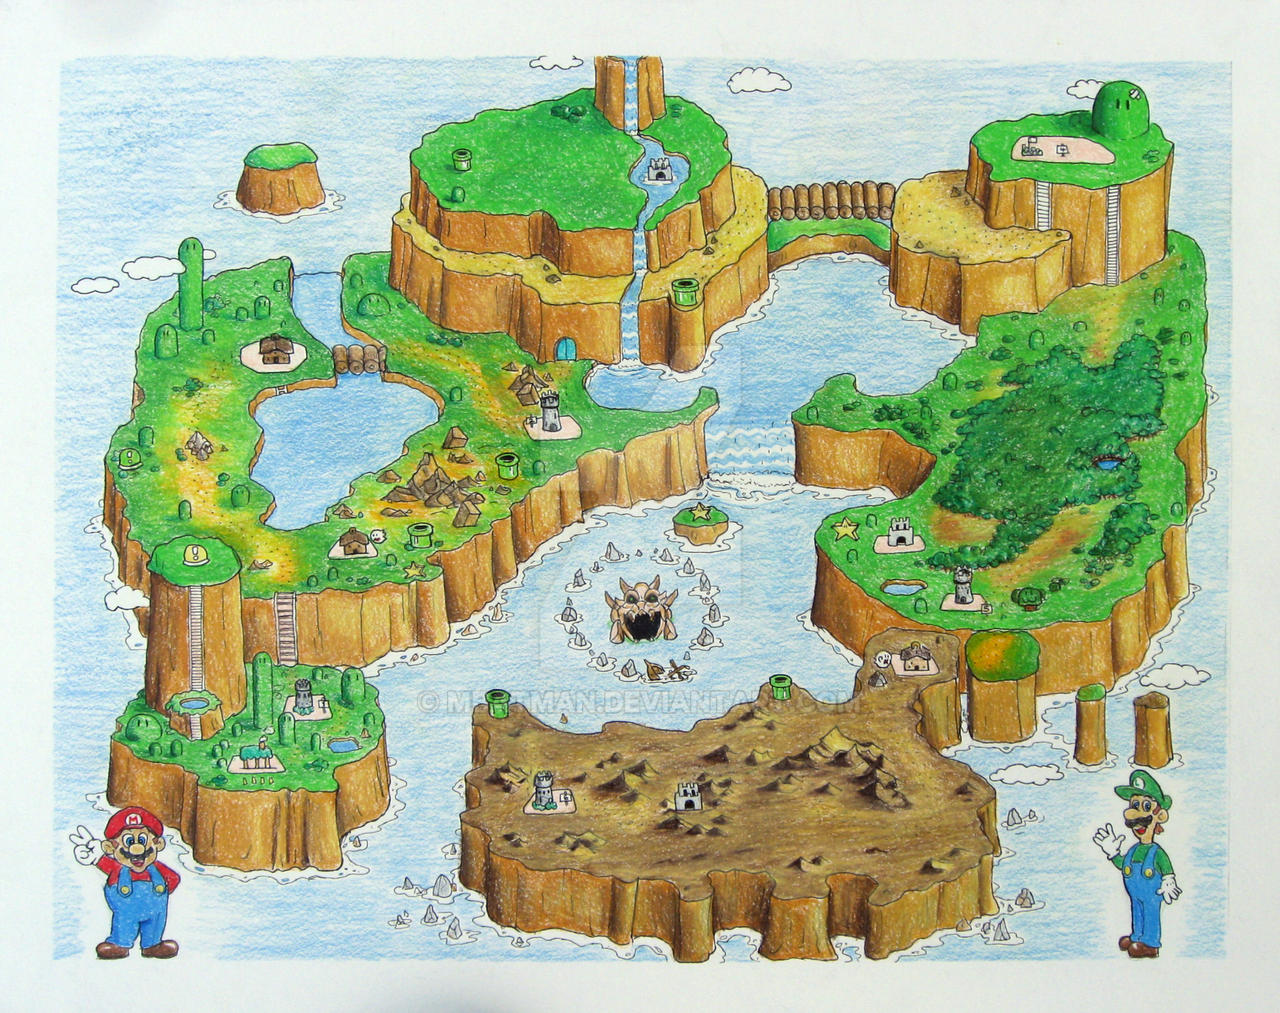 Movie super mario bros favourites by dominion44 on deviantart gumiabroncs Images